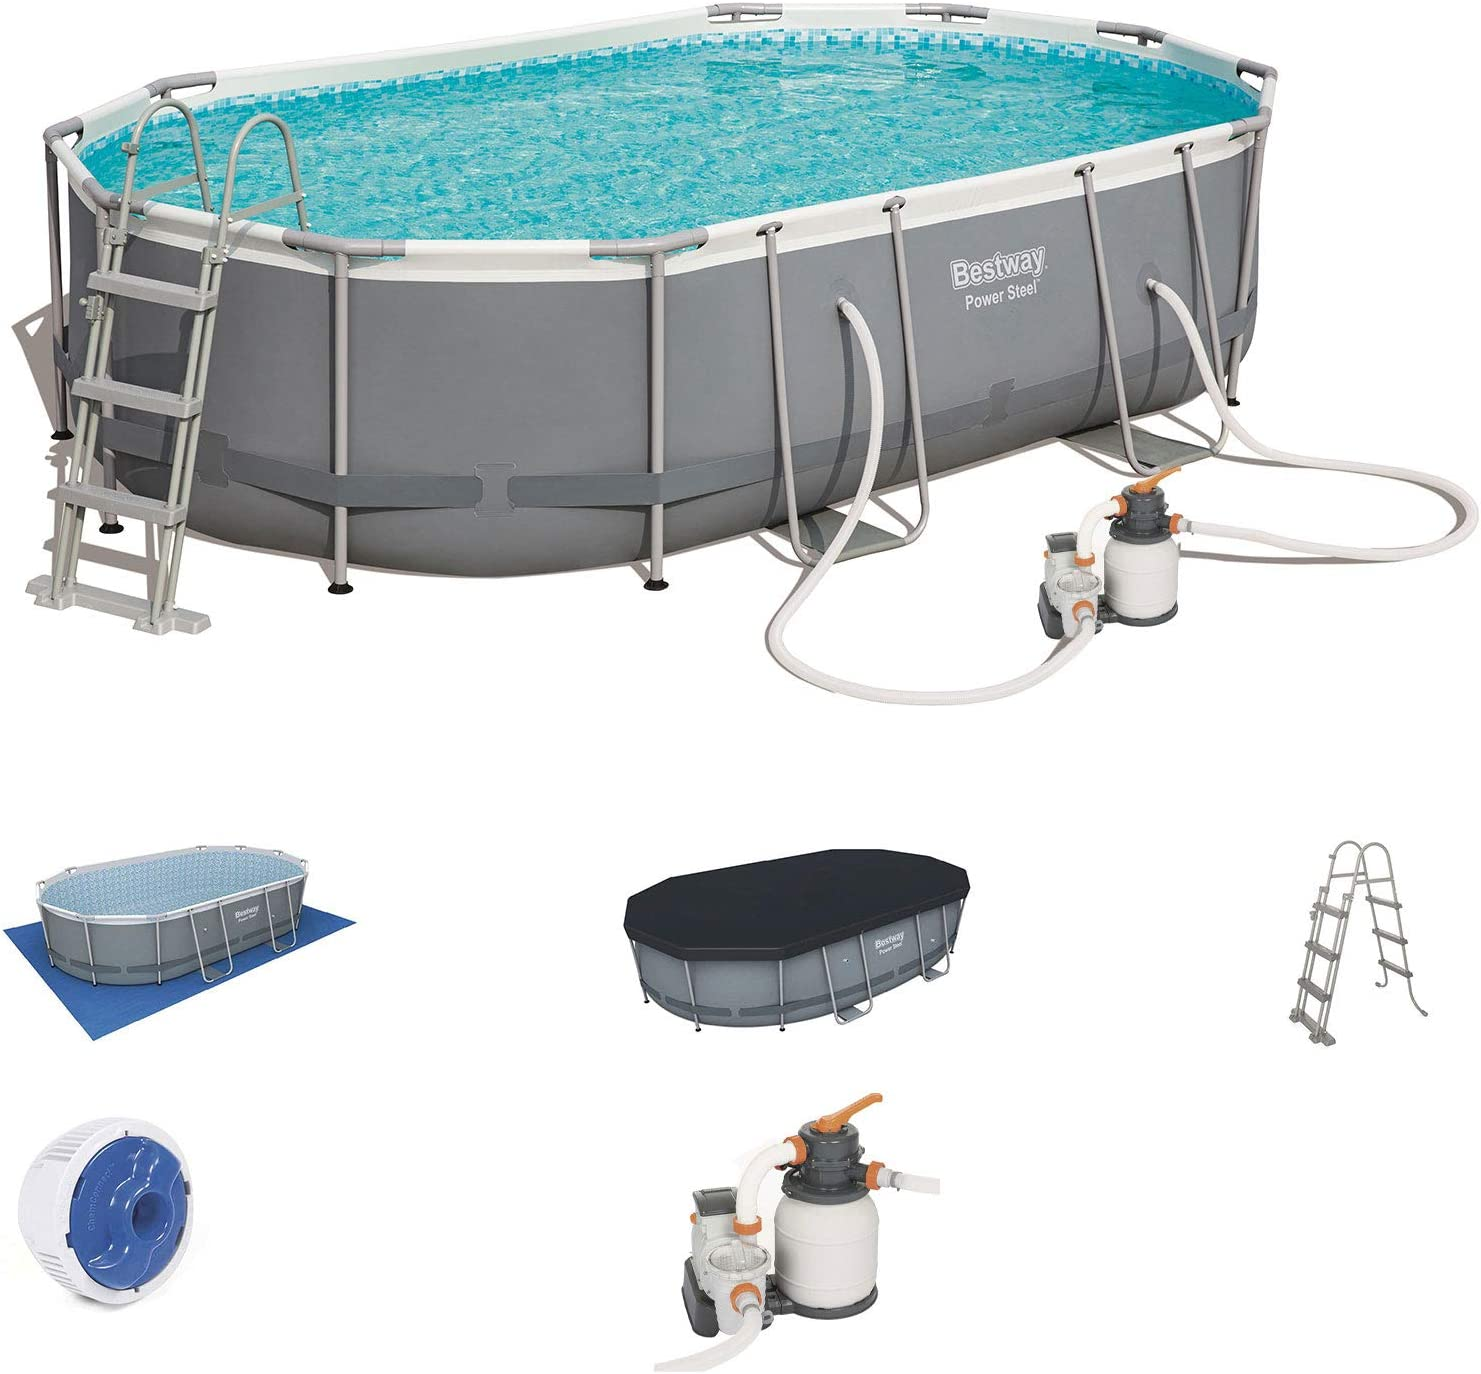 Bestway 56448SF - Piscina Desmontable Tubular Power Steel Oval ...